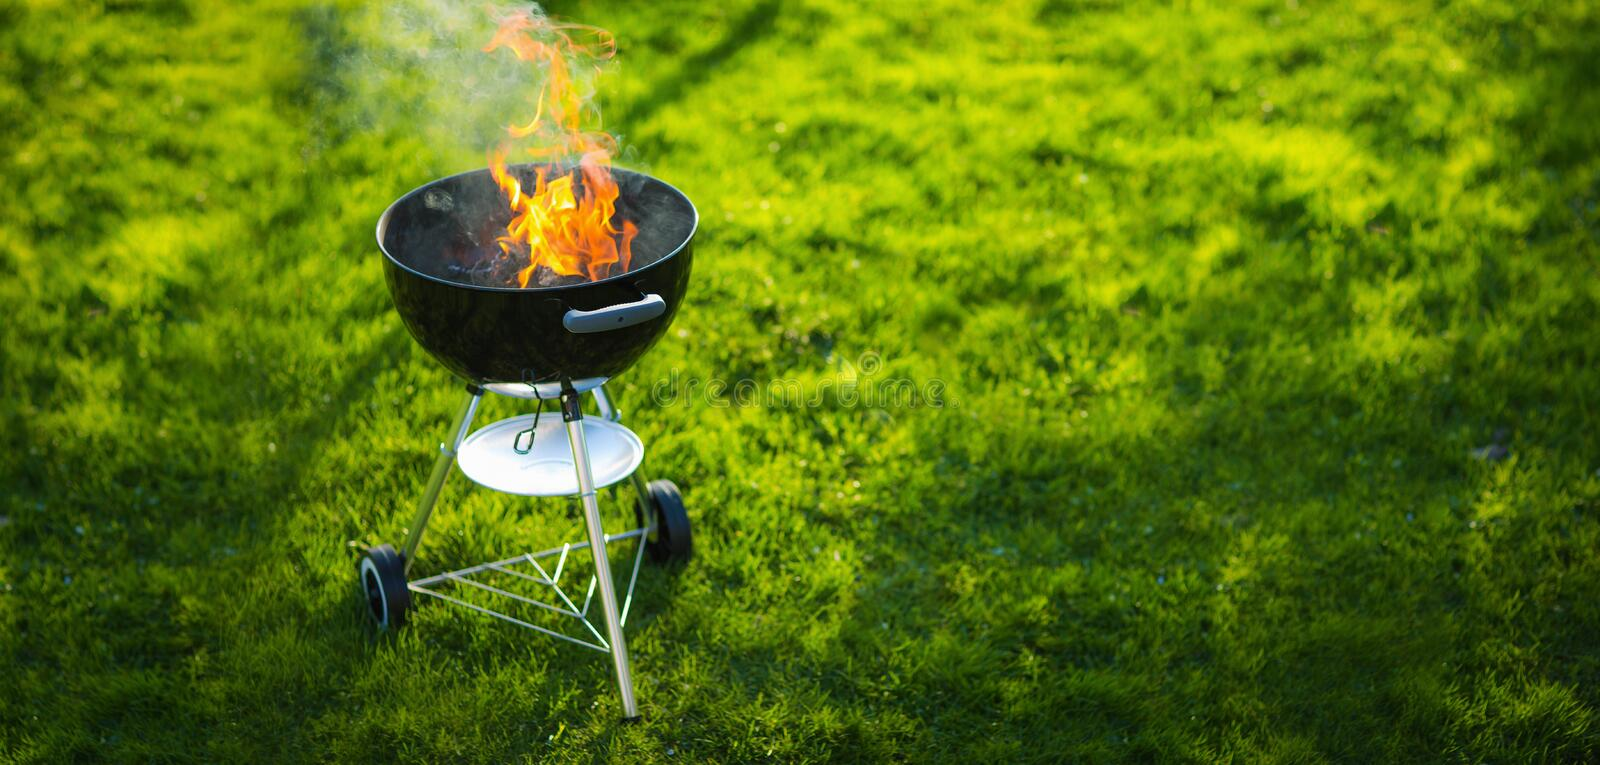 Barbecue Grill in the Open Air. Summer Holidays royalty free stock photography